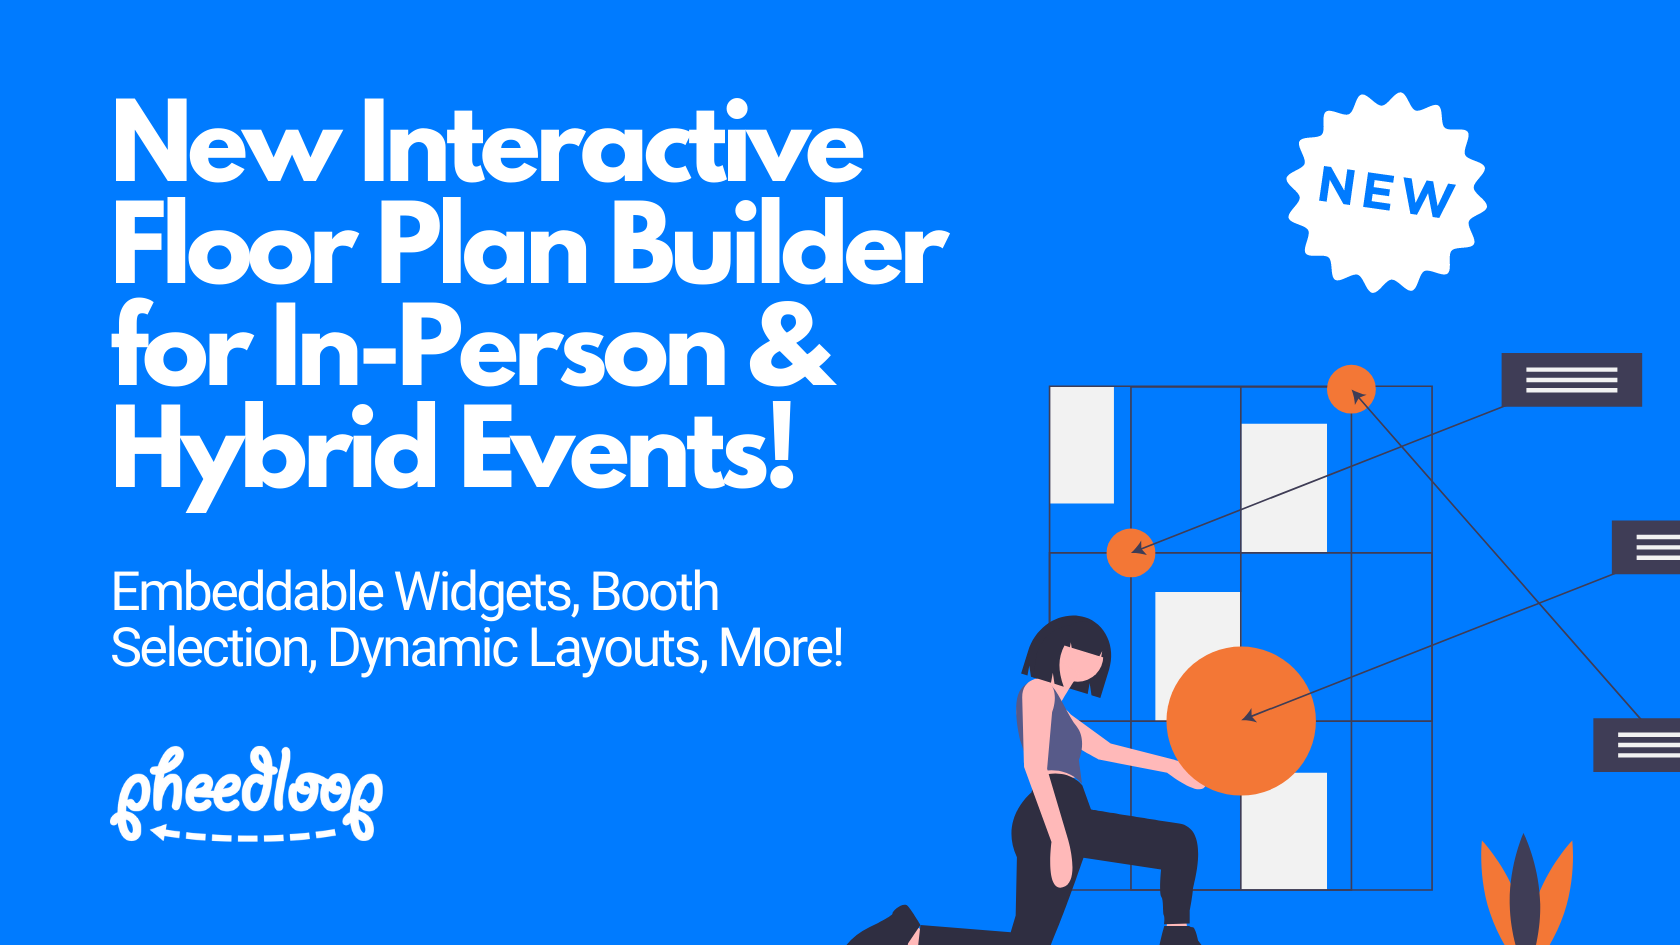 New Interactive Floor Plan Builder for In-Person and Hybrid Events!